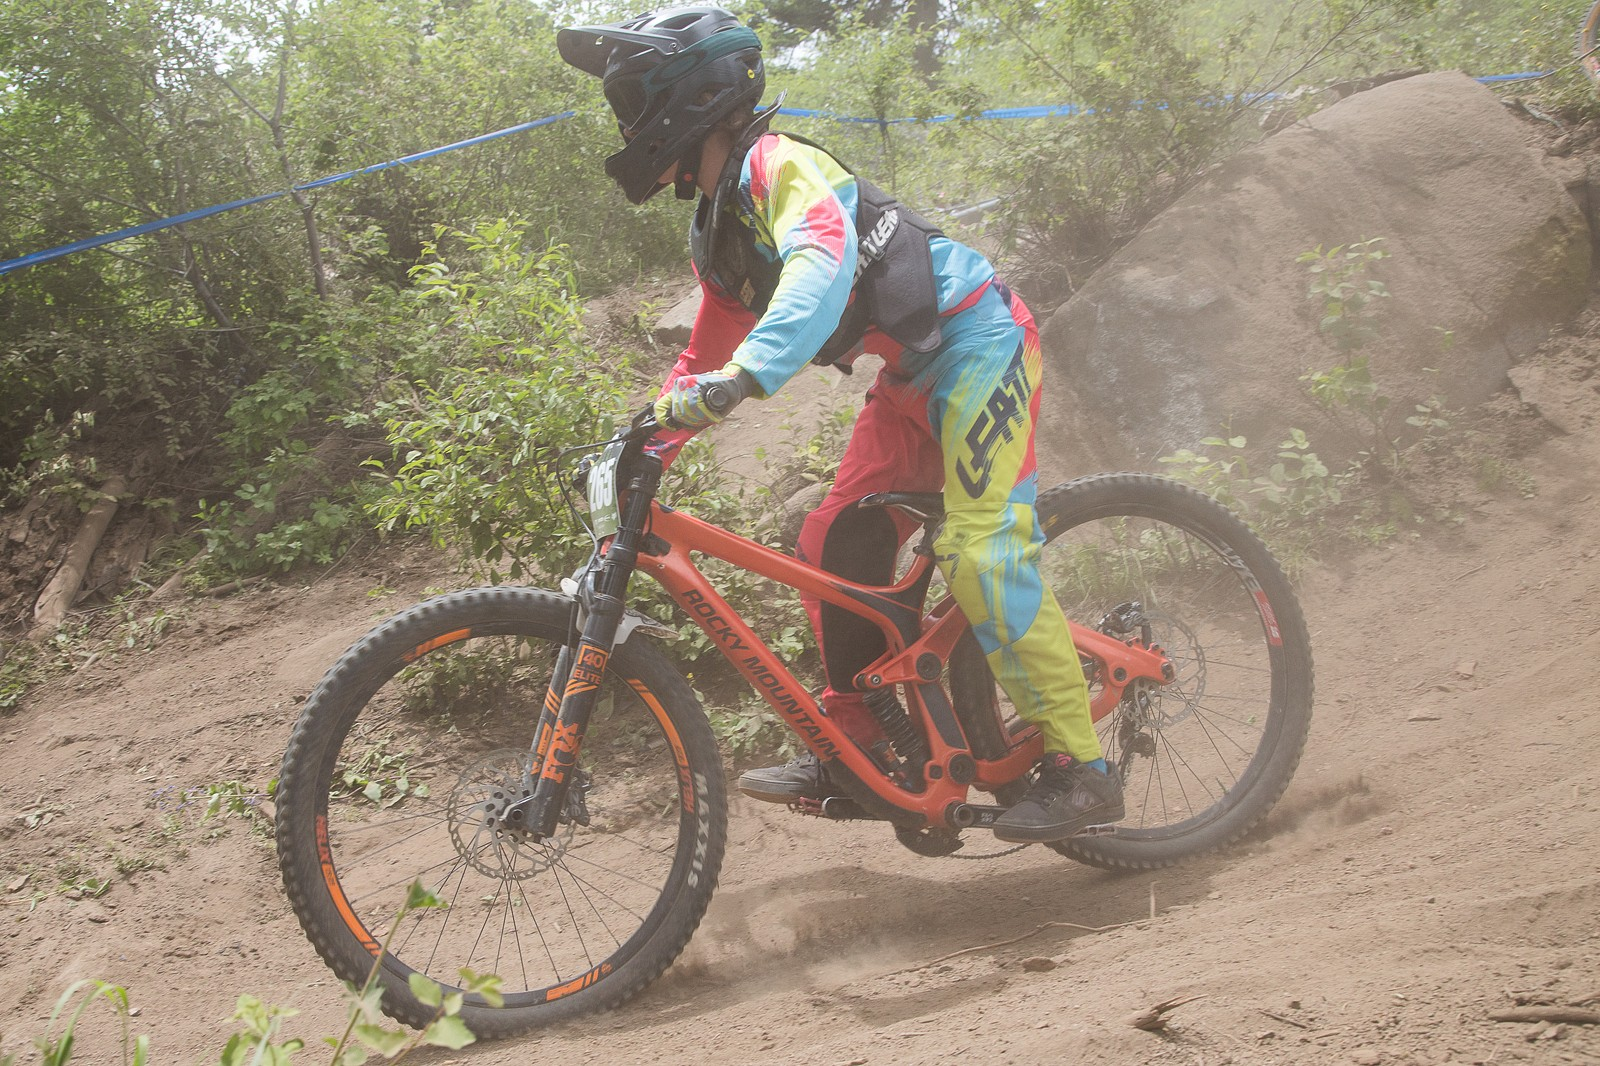 G-Out Project, Tamarack #USDH National-9 - G-Out Project - Tamarack NW Cup / #USDH - Mountain Biking Pictures - Vital MTB